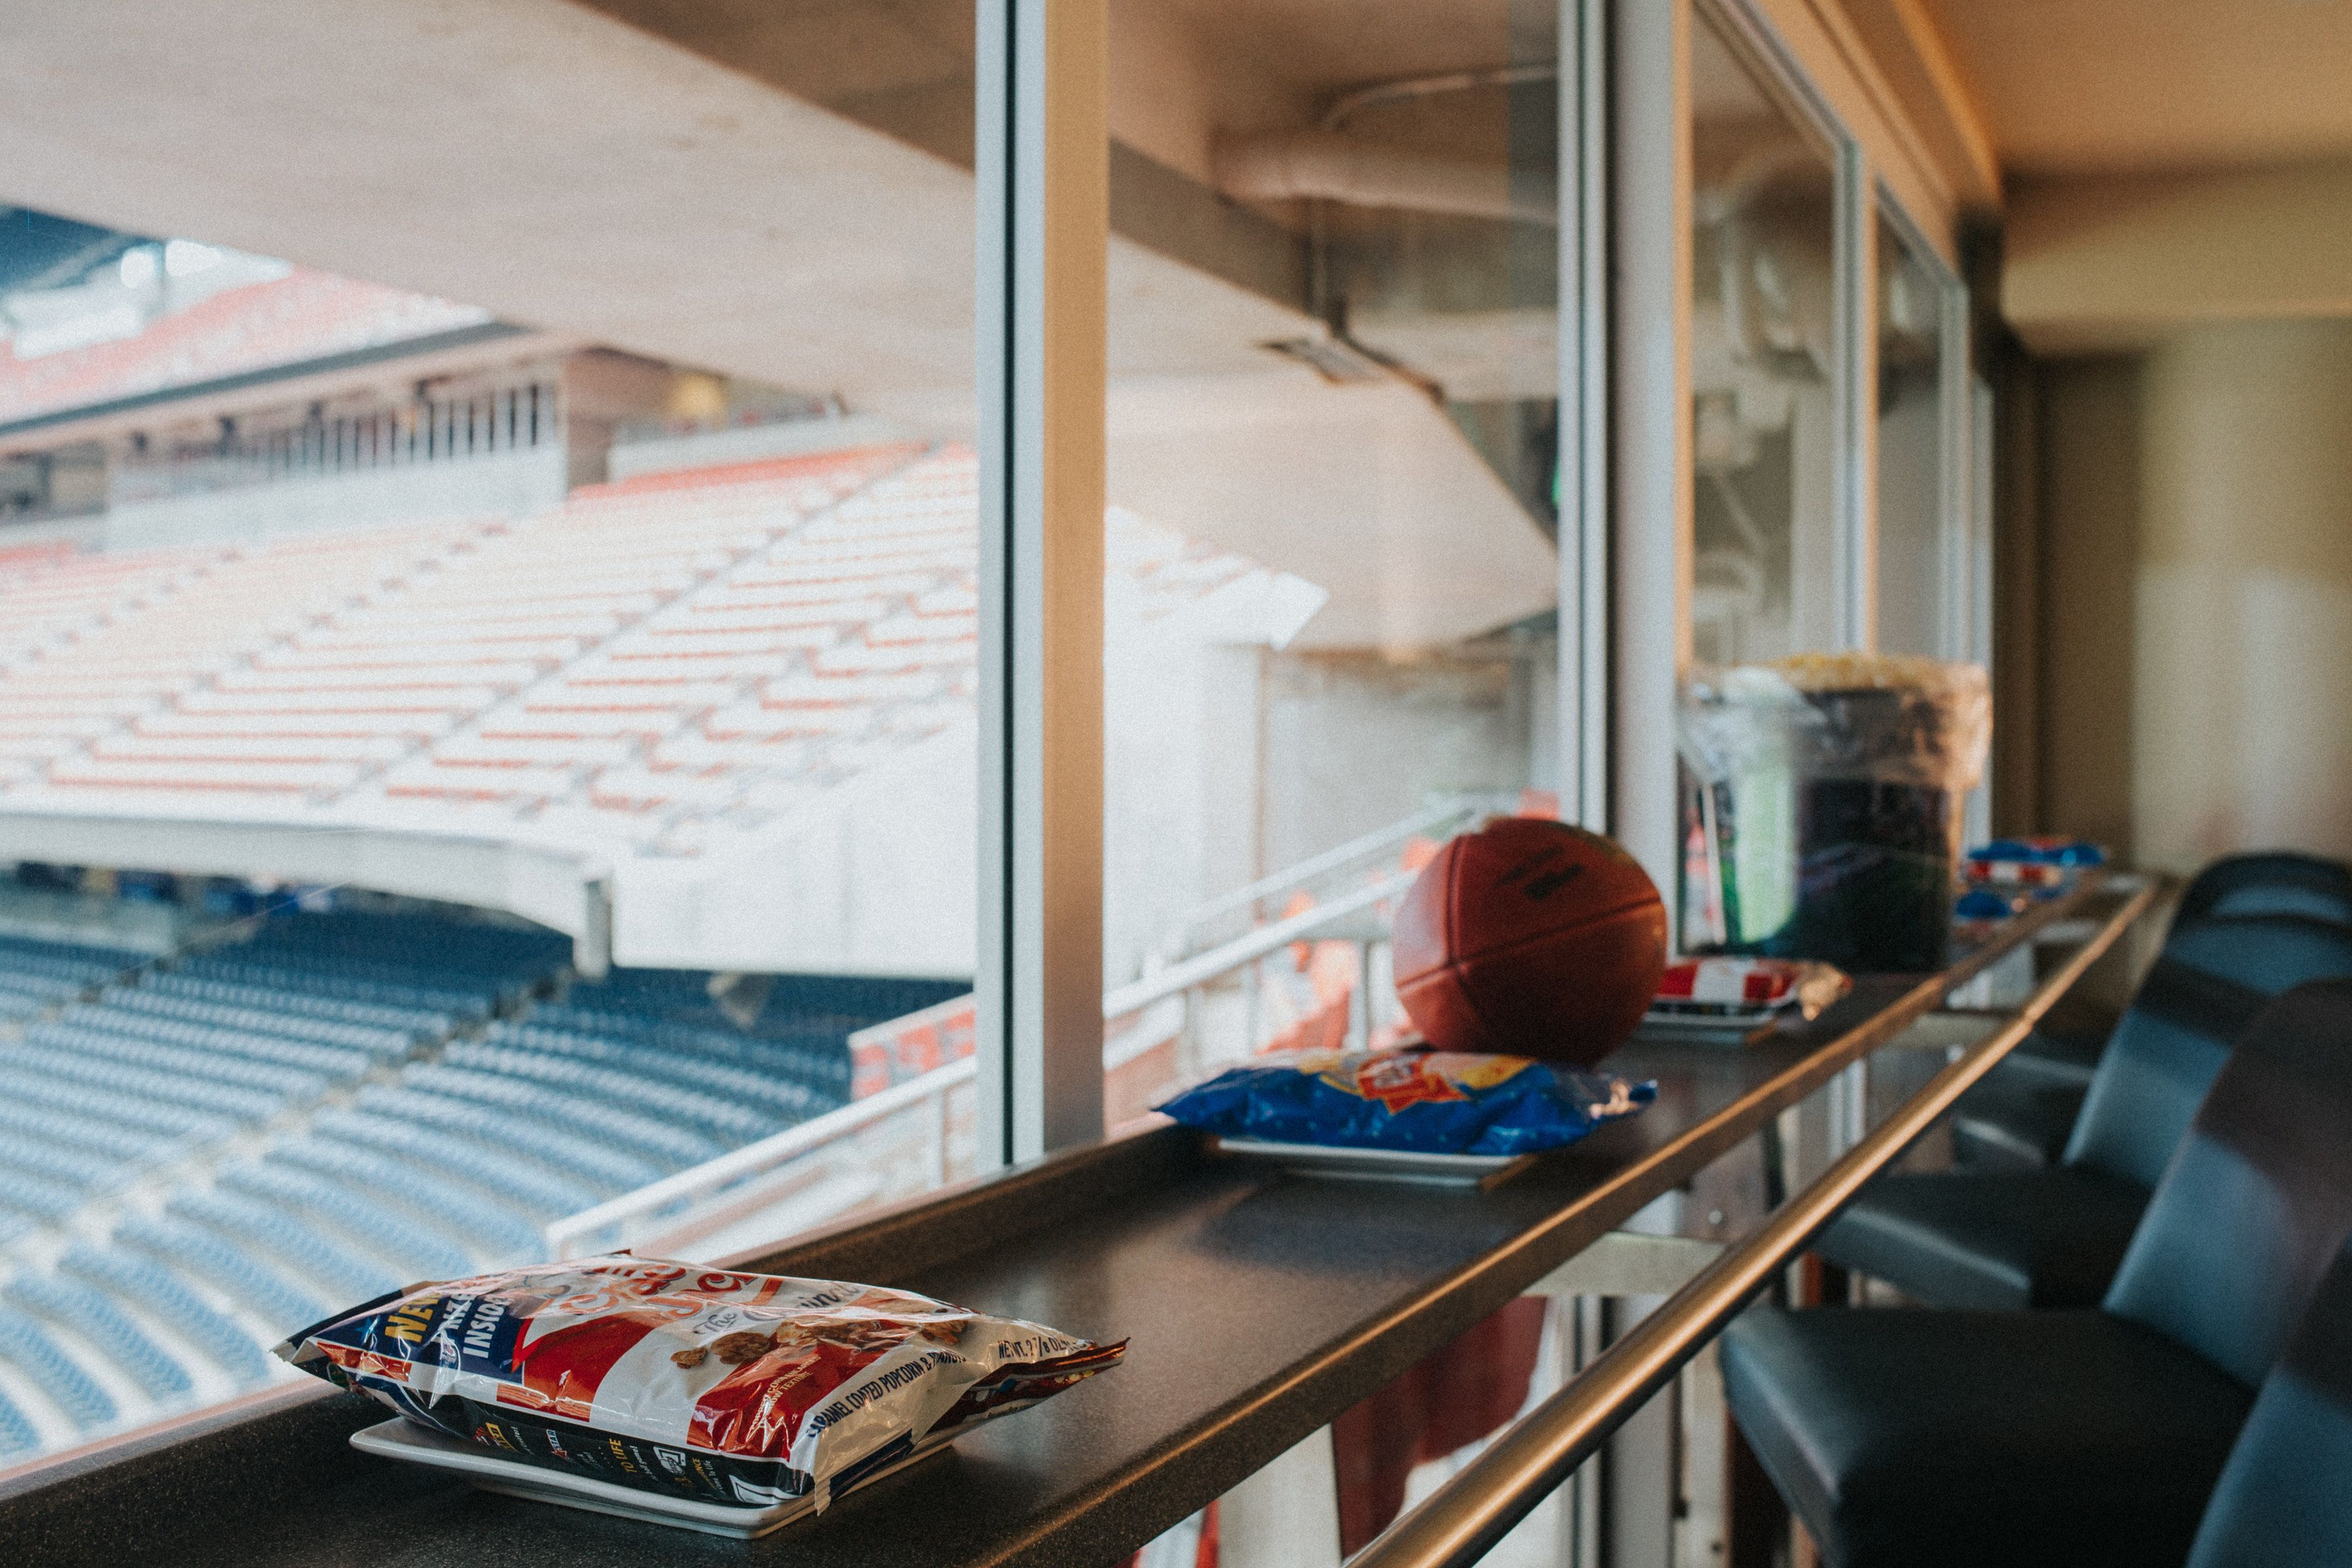 Food and non-alcoholic beverage included in suite price